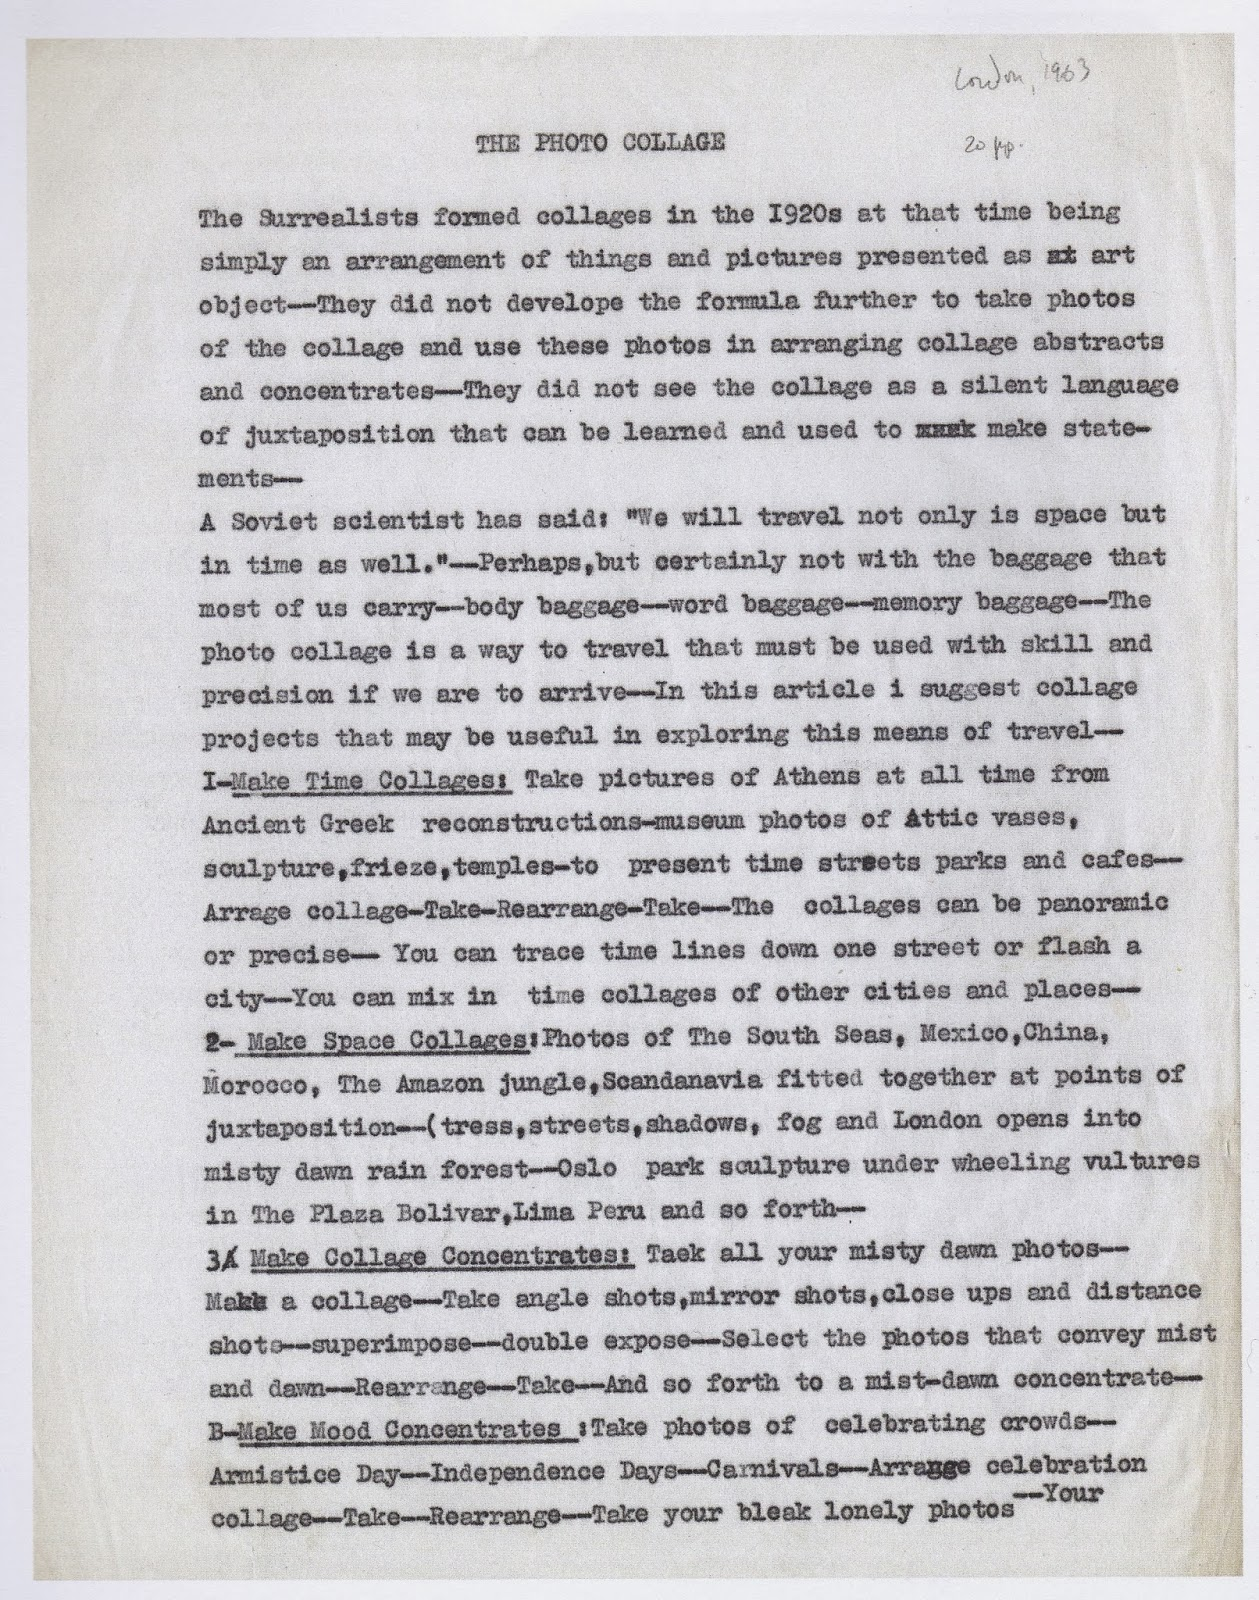 william s. burroughs thesis Best, philip neil (1998) apocalypticisim in the fiction of william s burroughs, jg  ballard, and thomas pynchon doctoral thesis, durham.